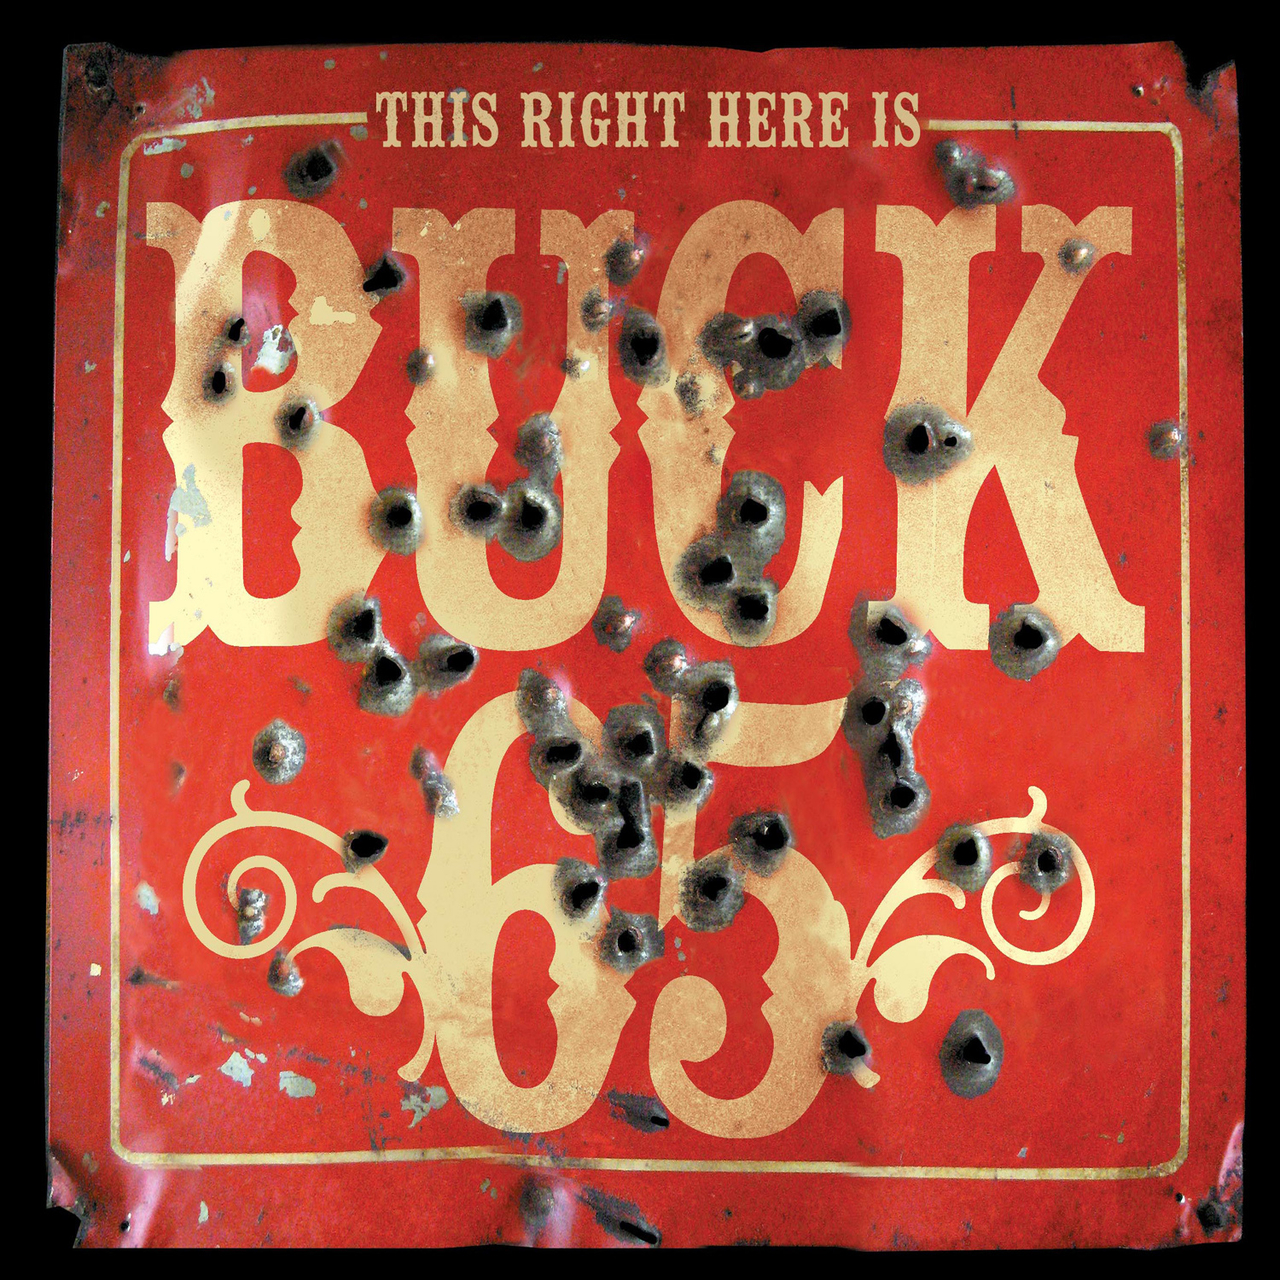 Buck 65, This Right Here Is Buck 65